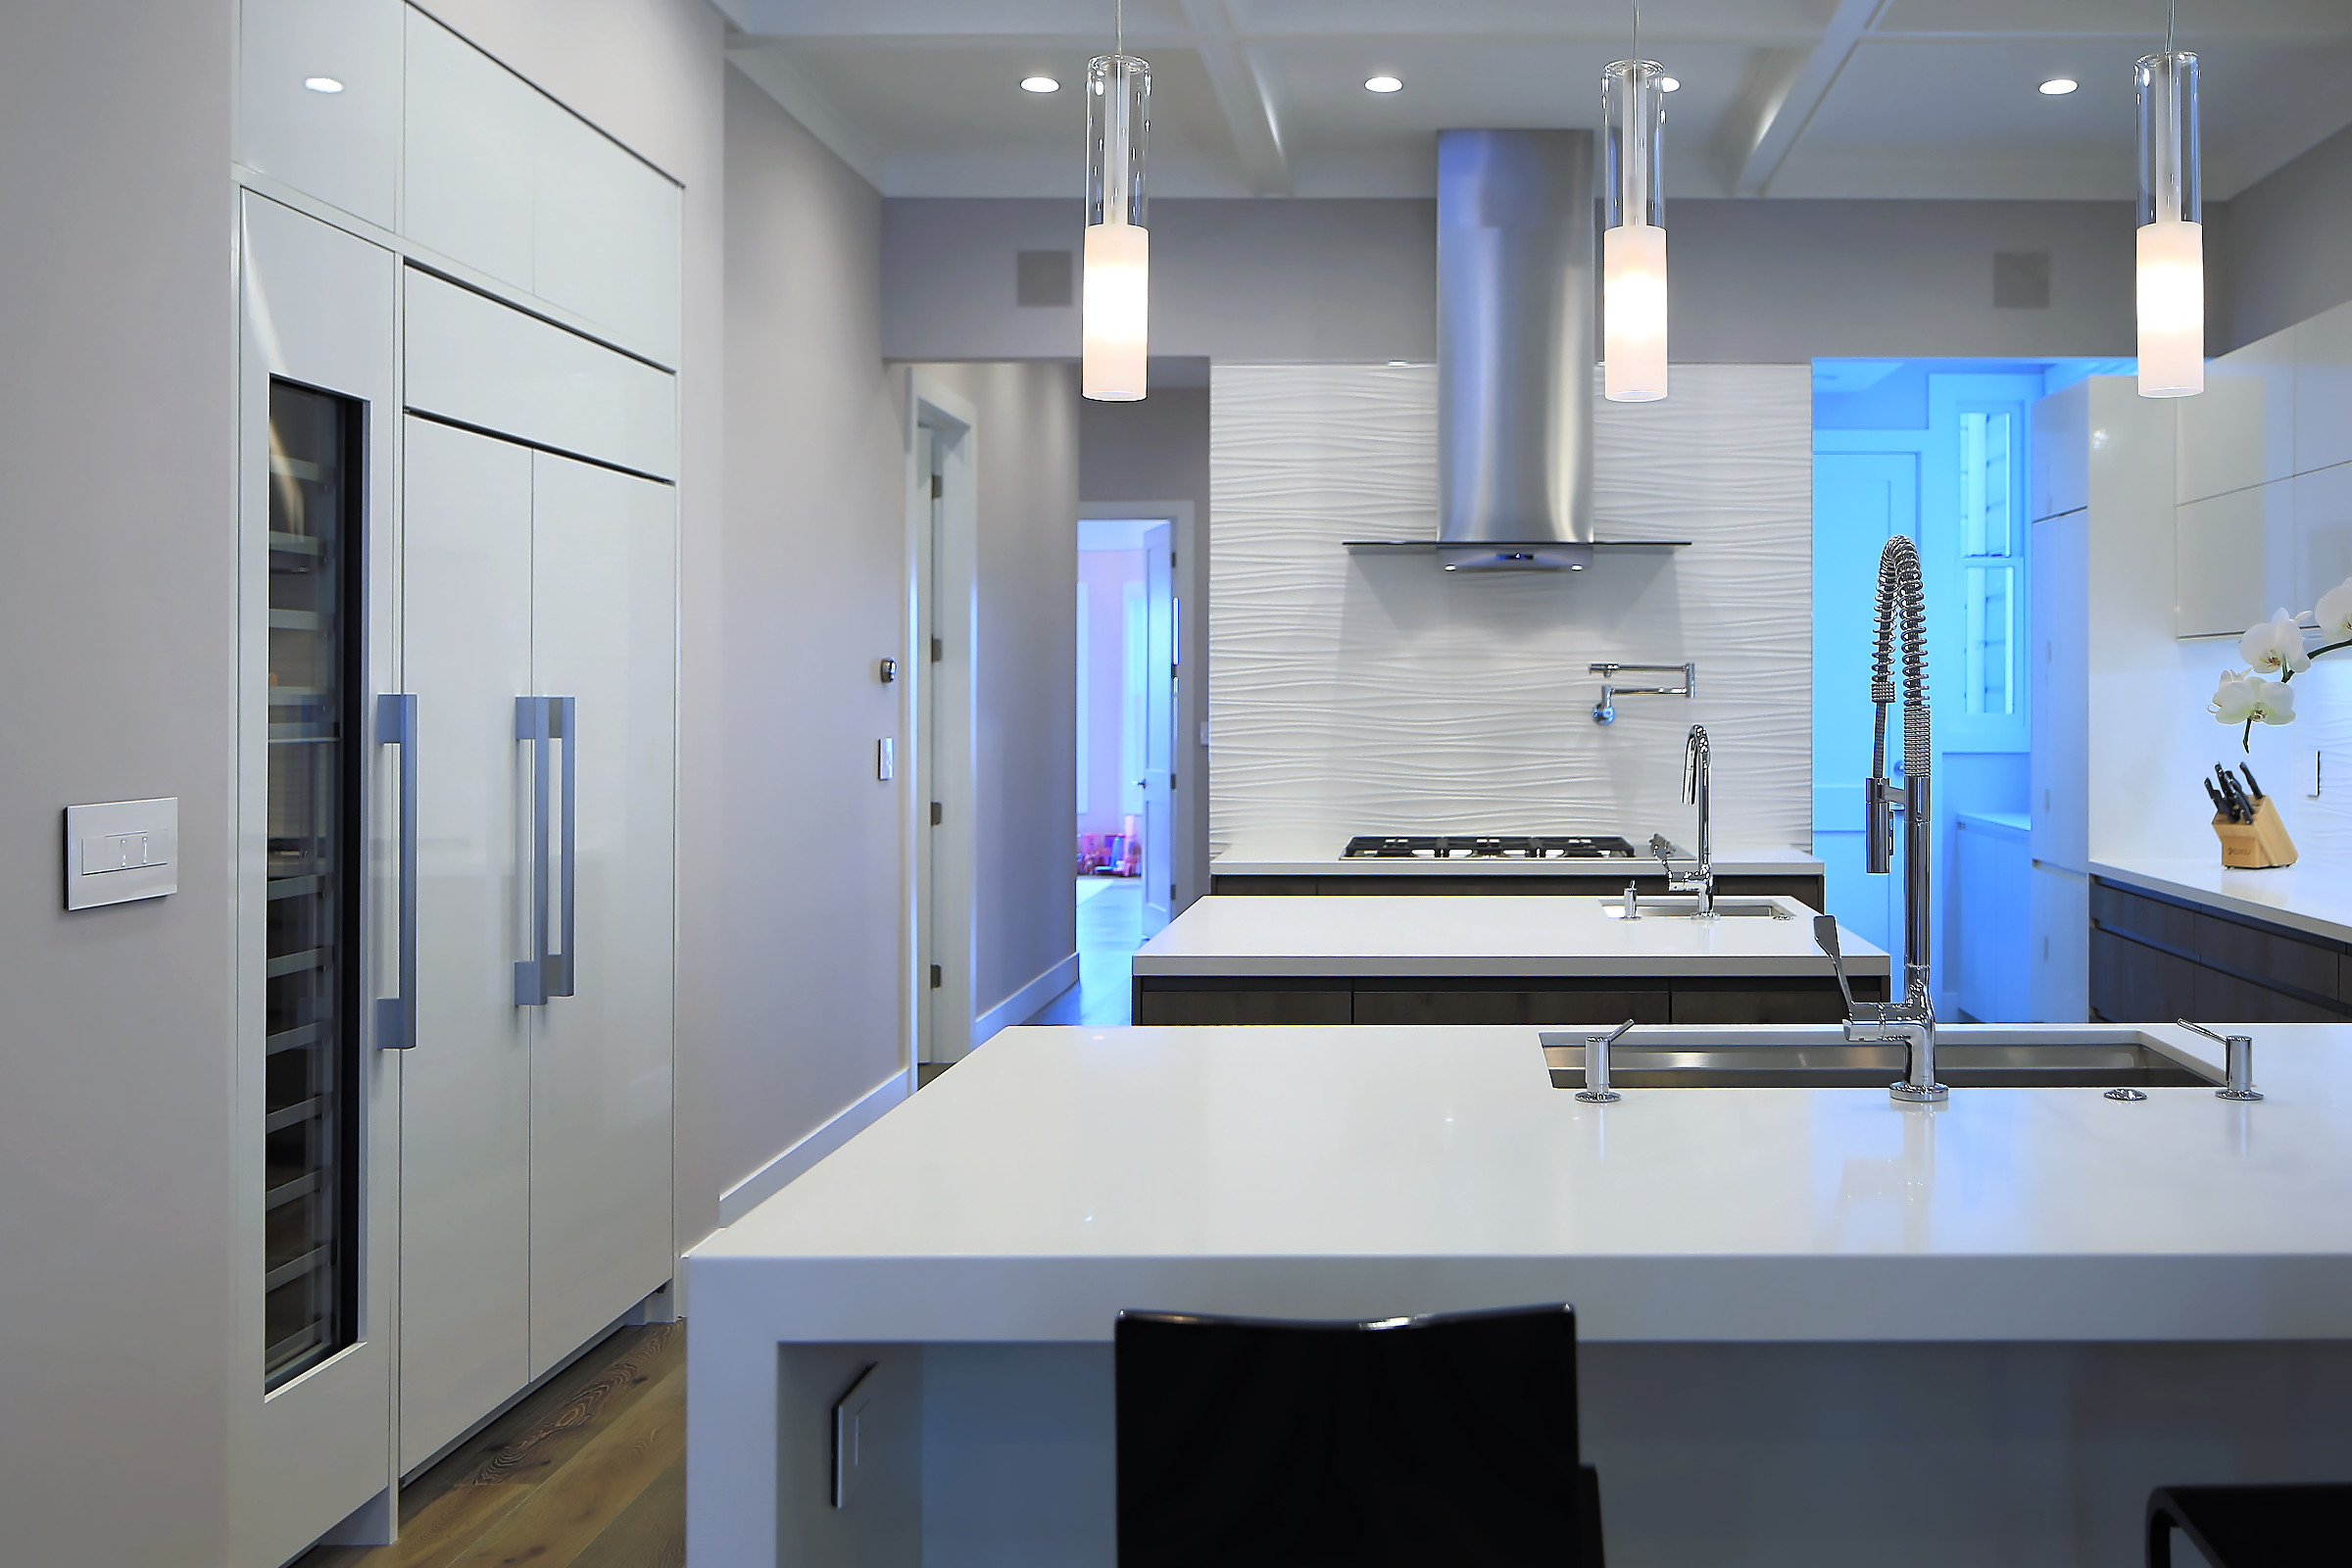 With two sinks and a cooking area, multiple people can work freely within this multiple island kitchen.